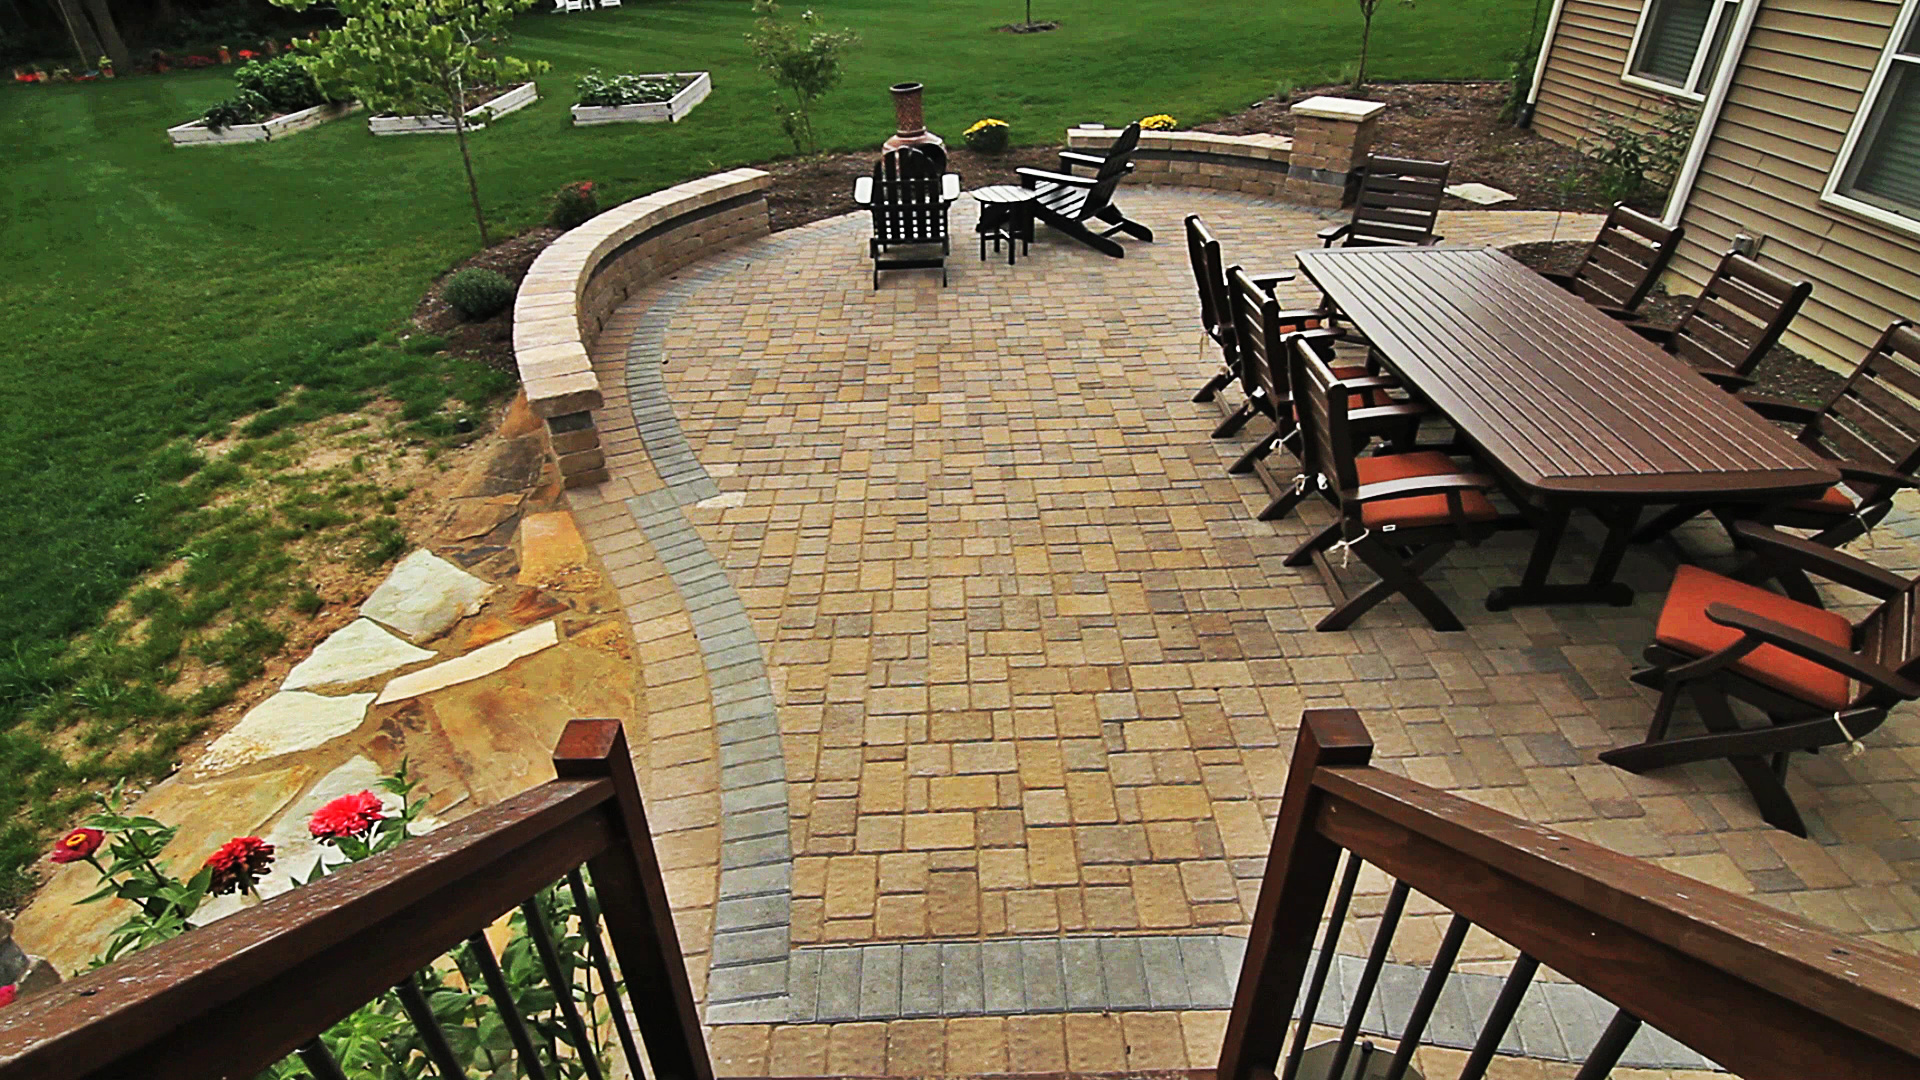 Outdoor Patios & Rooms